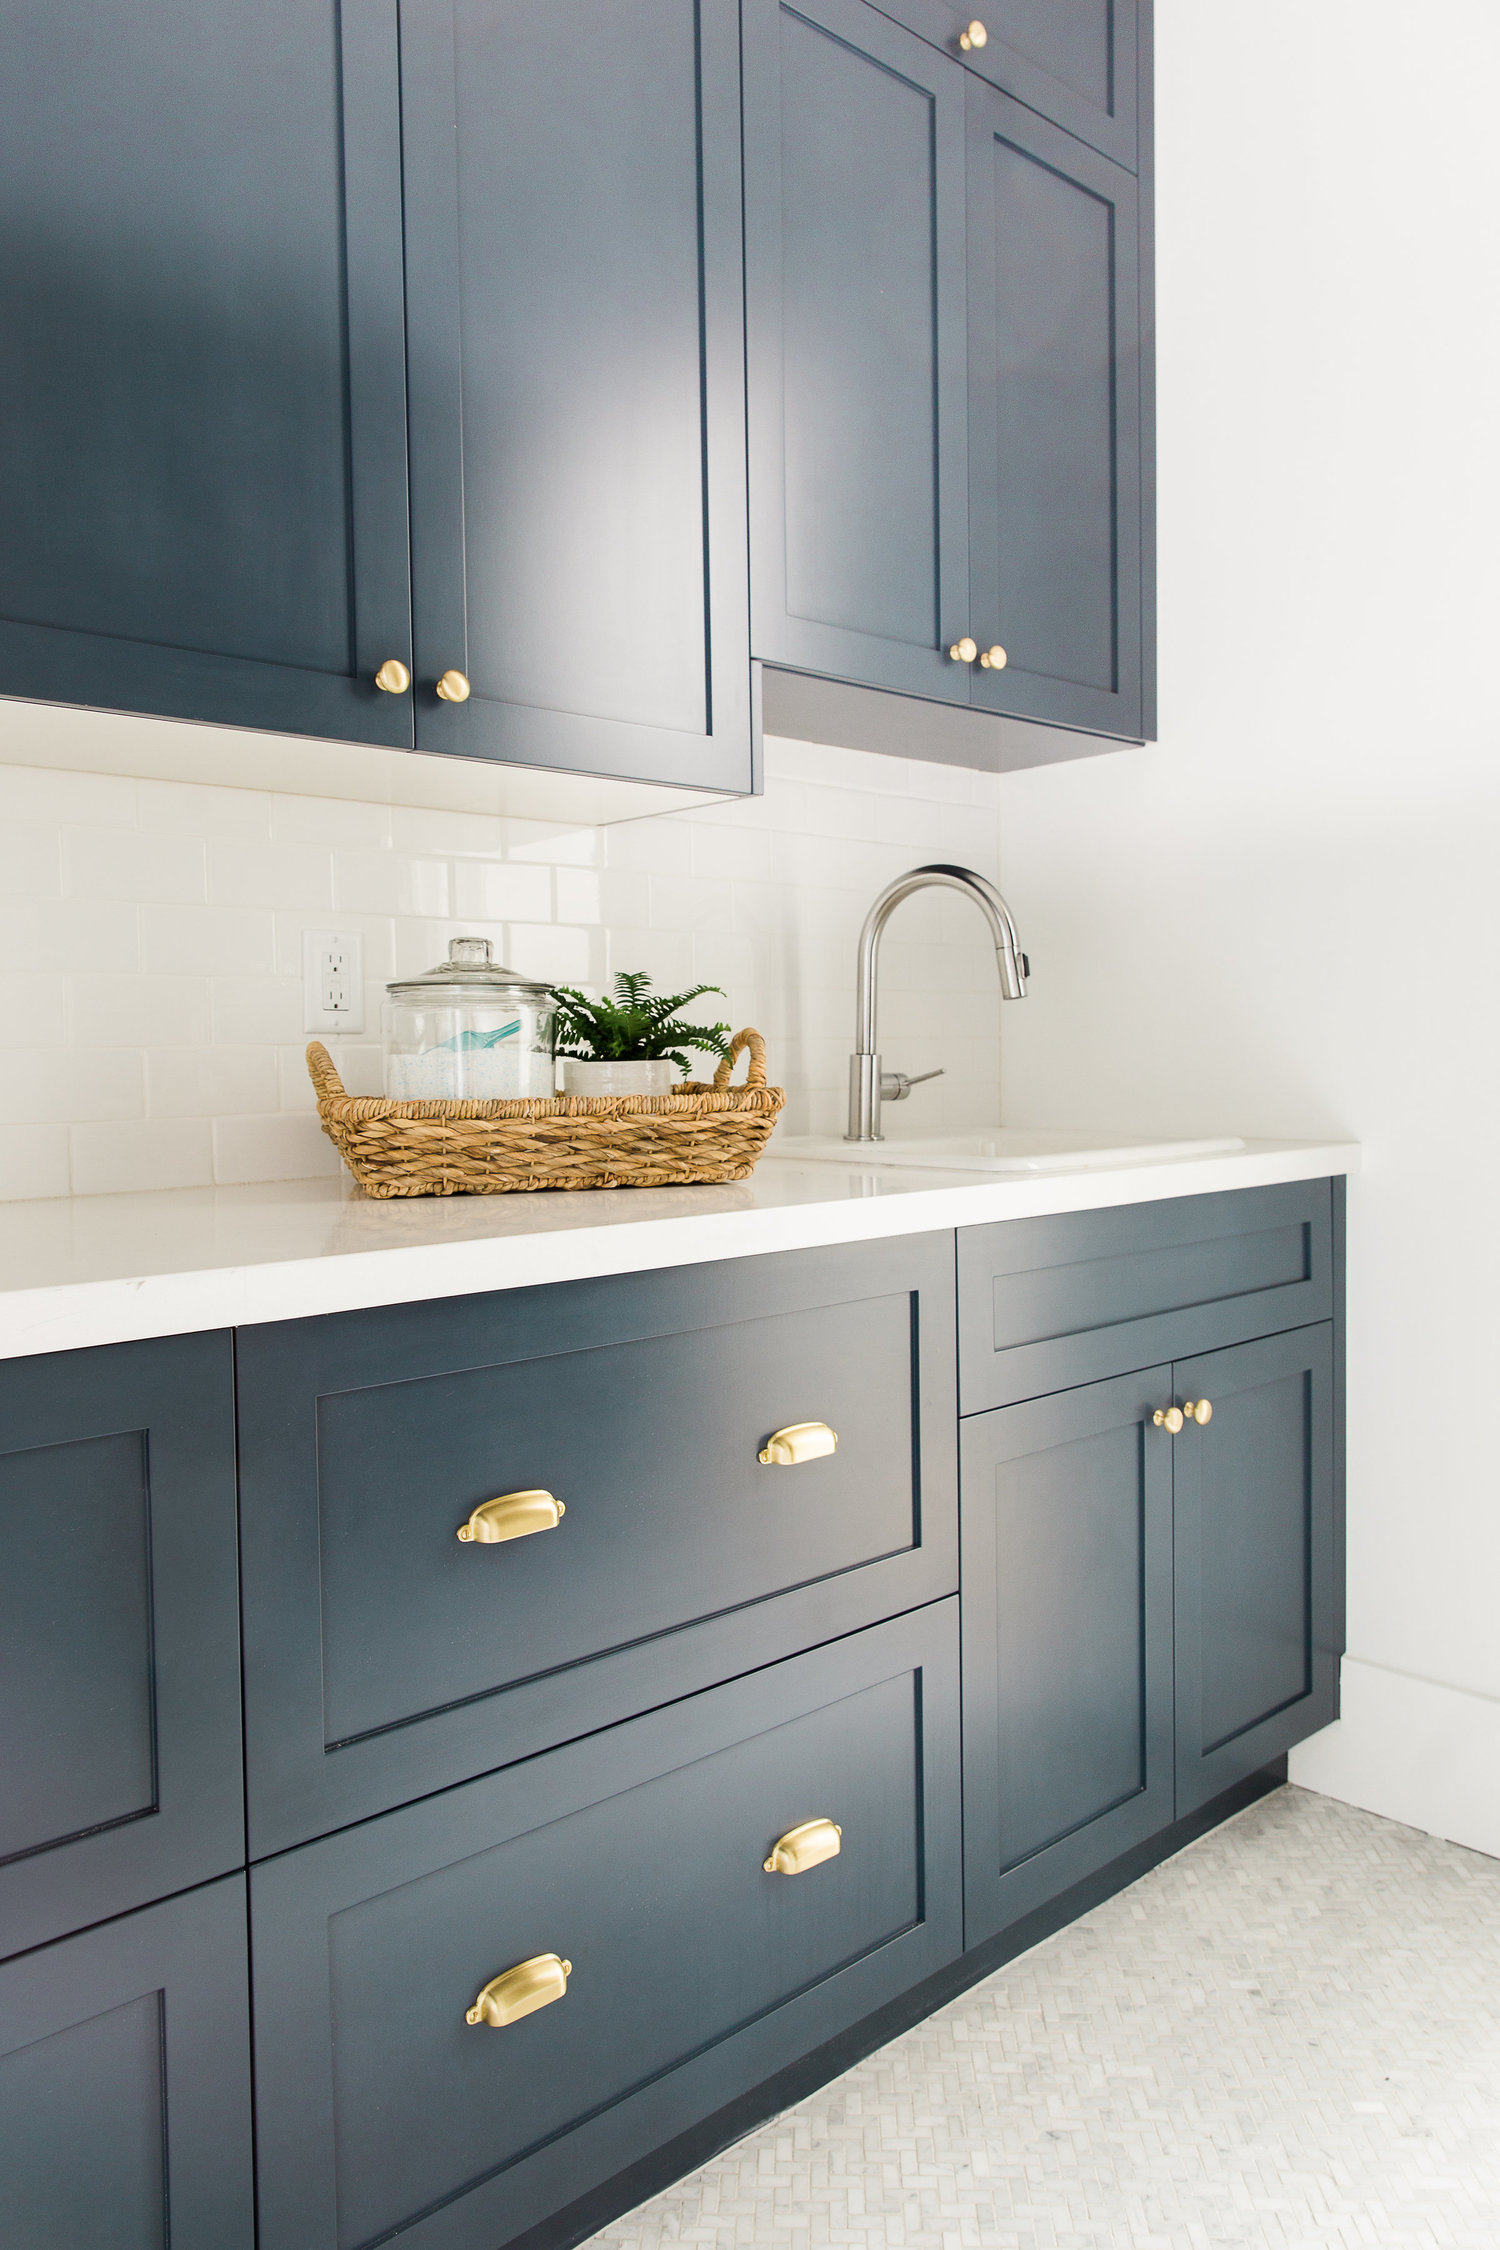 Dark blue cabinets with white counter tops